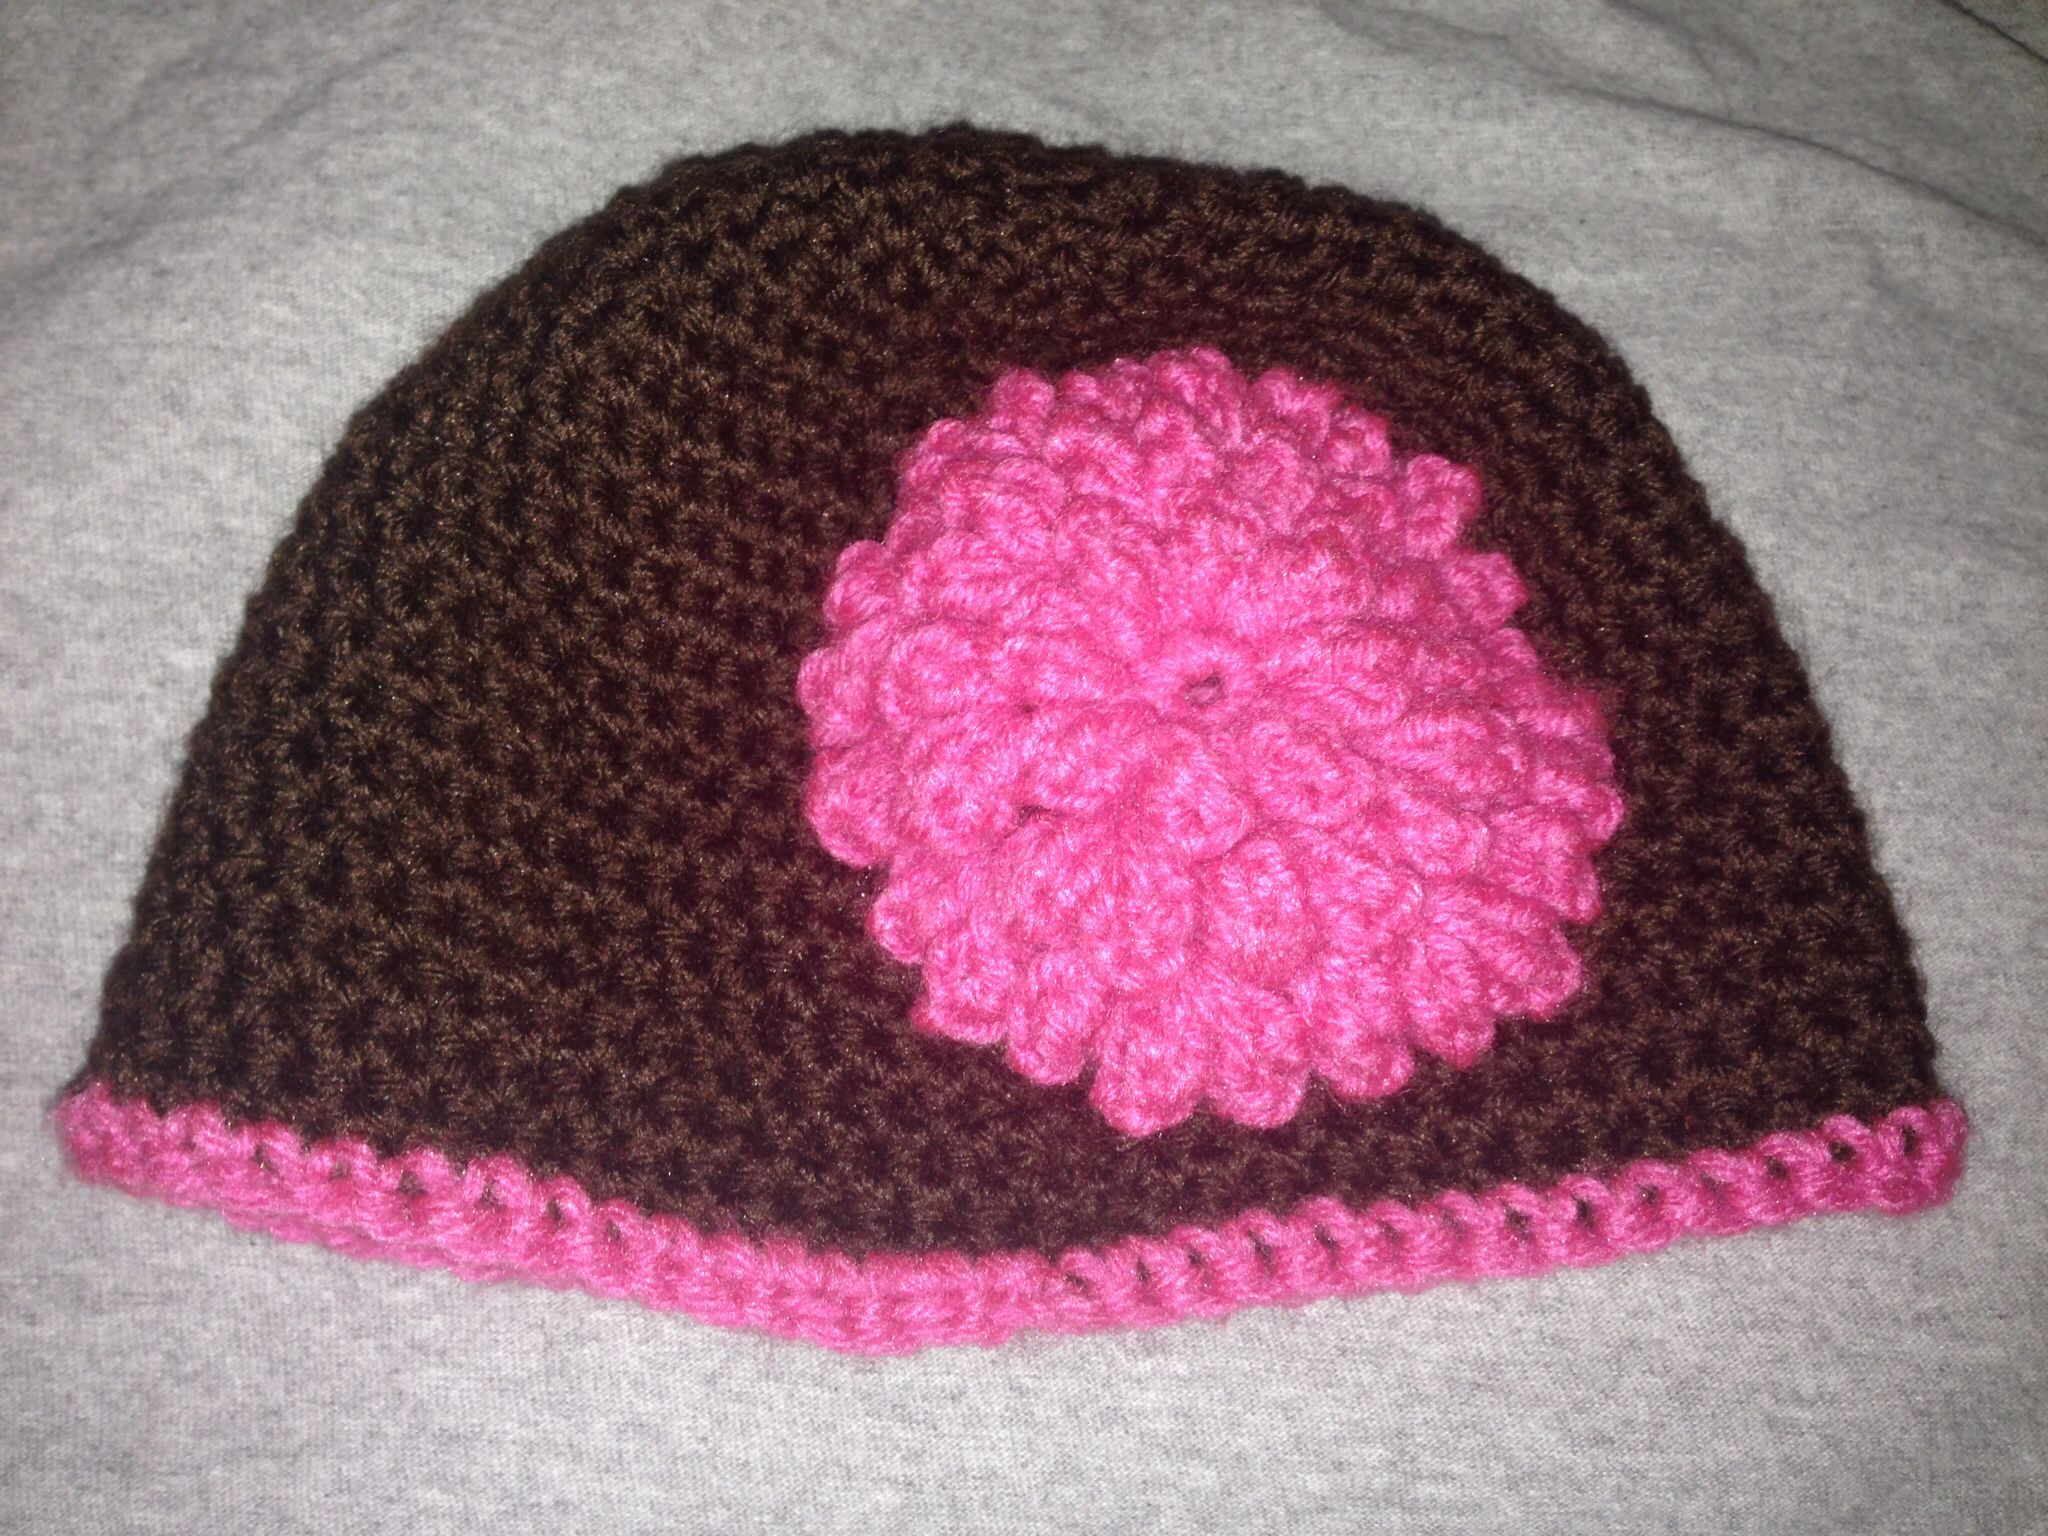 Easy beanie hat with popcorn flower appliqué i crocheted for my